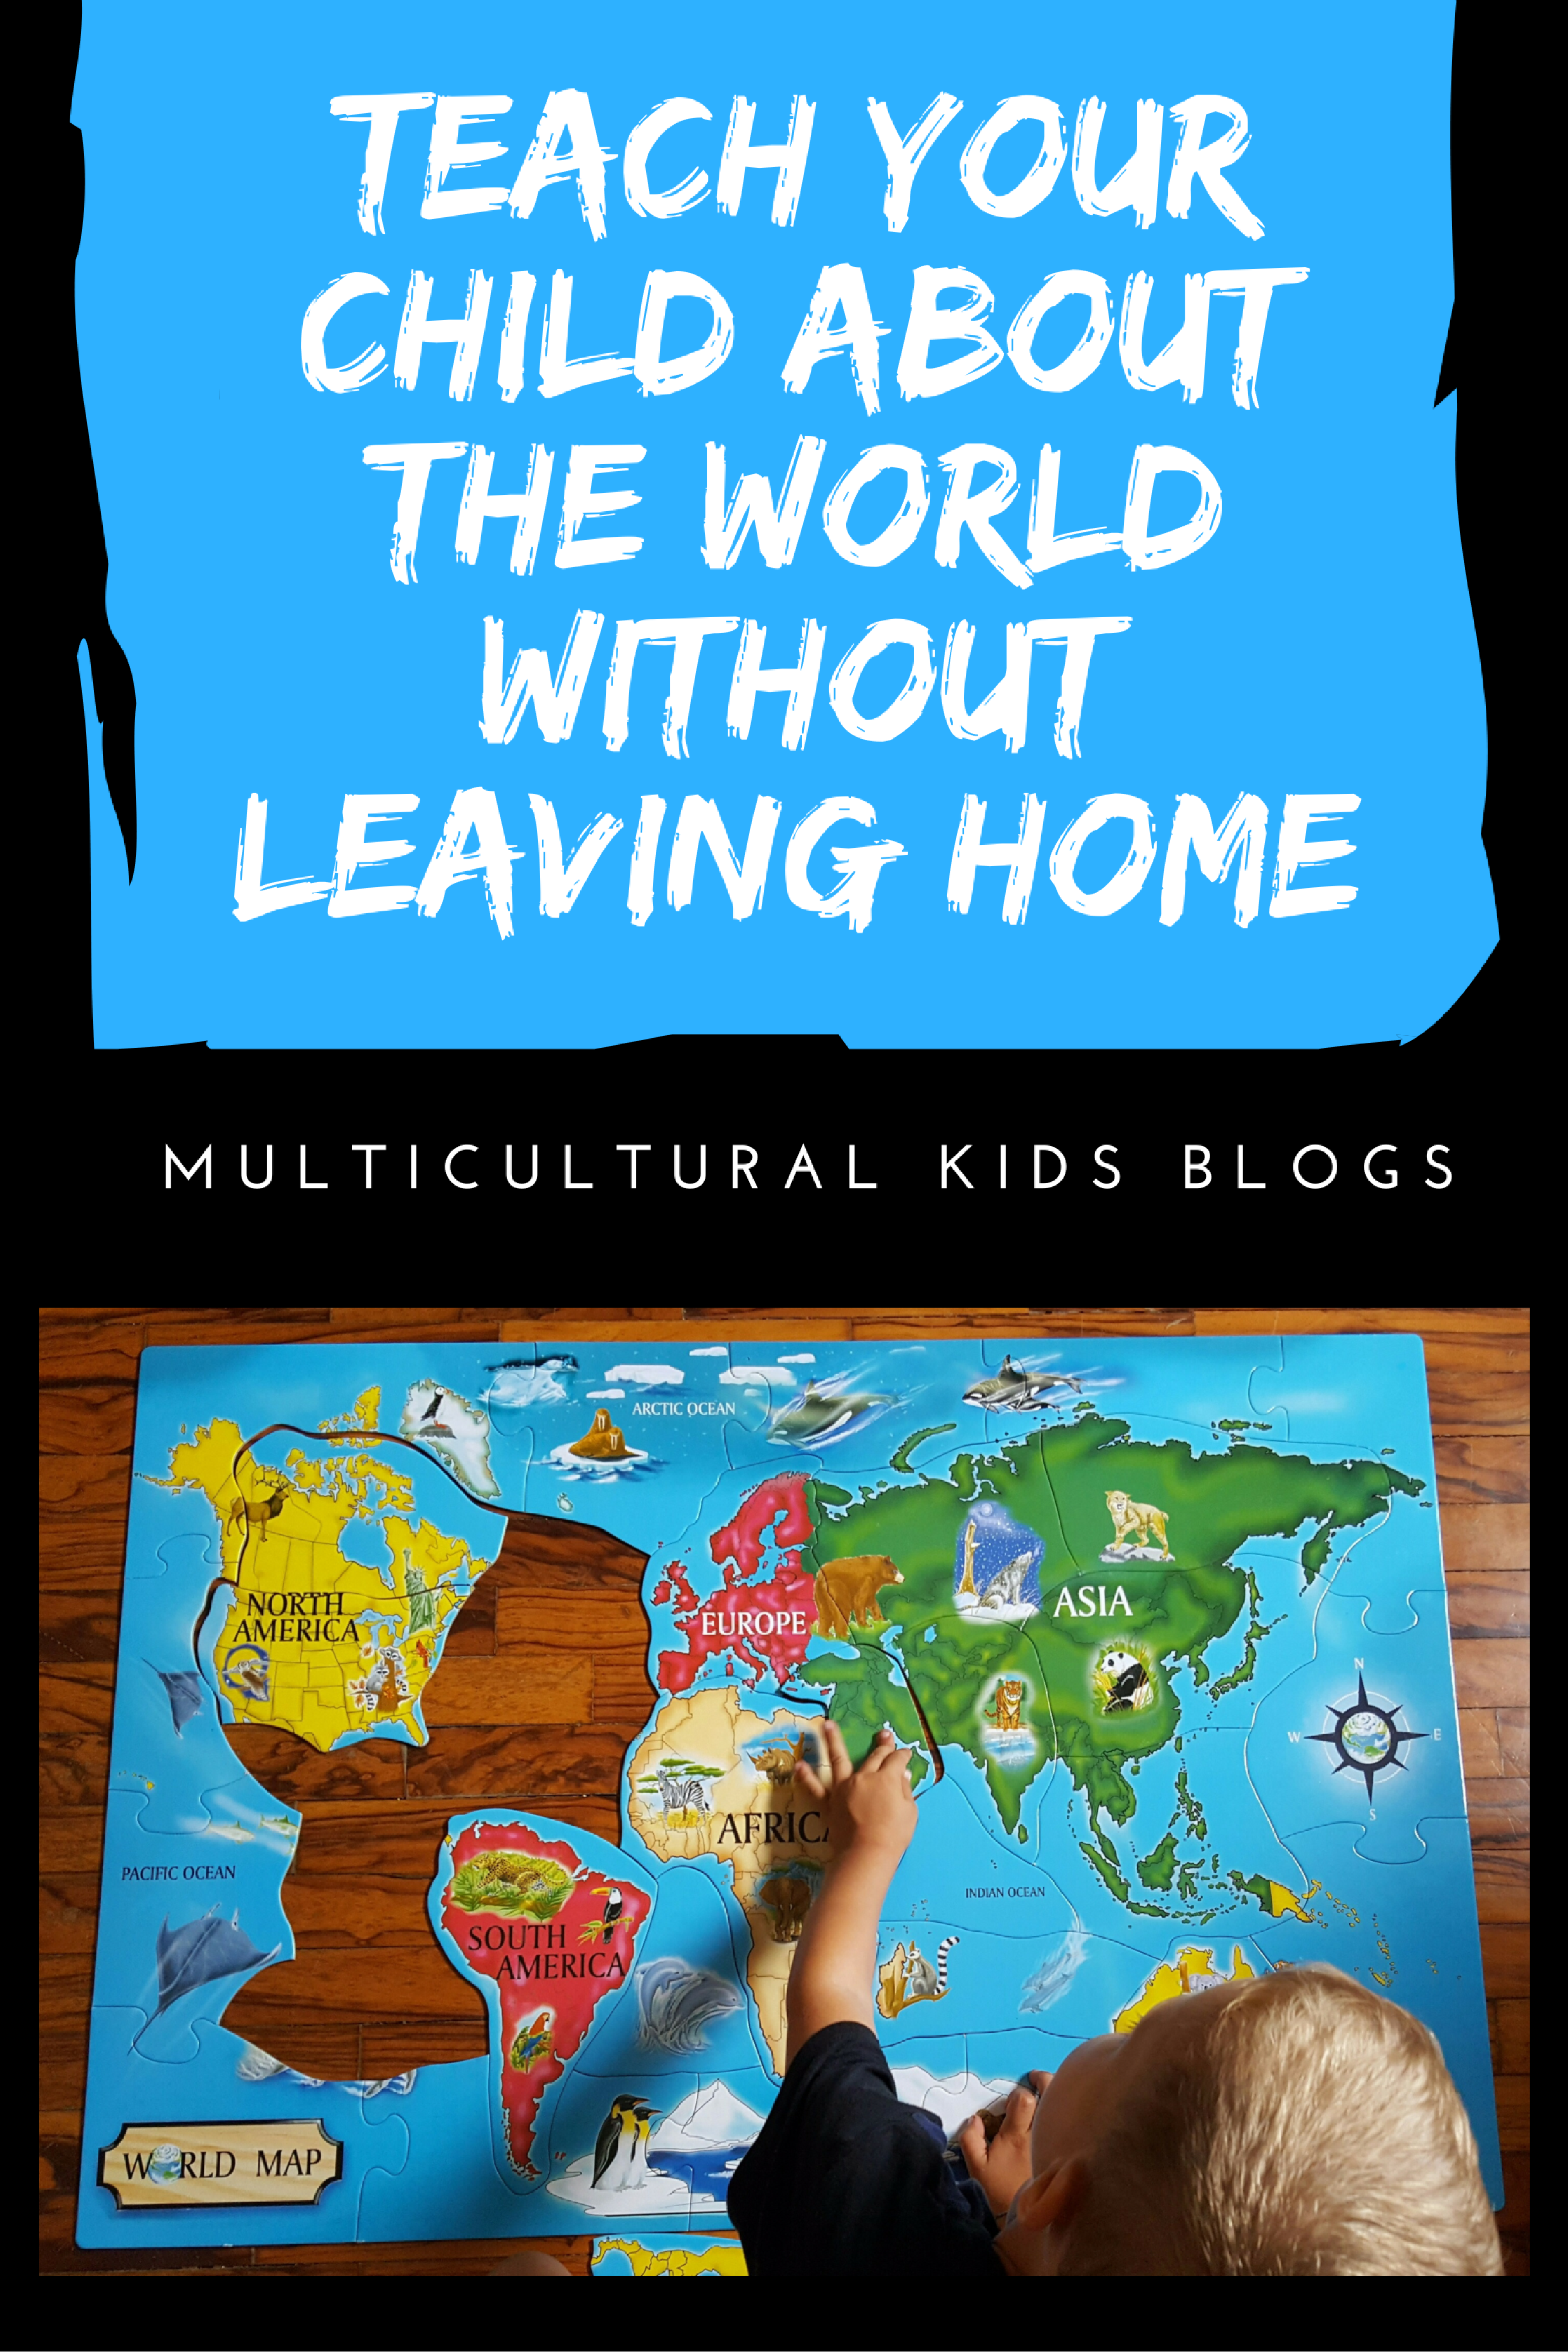 8 Ways To Learn About The World Without Leaving Home